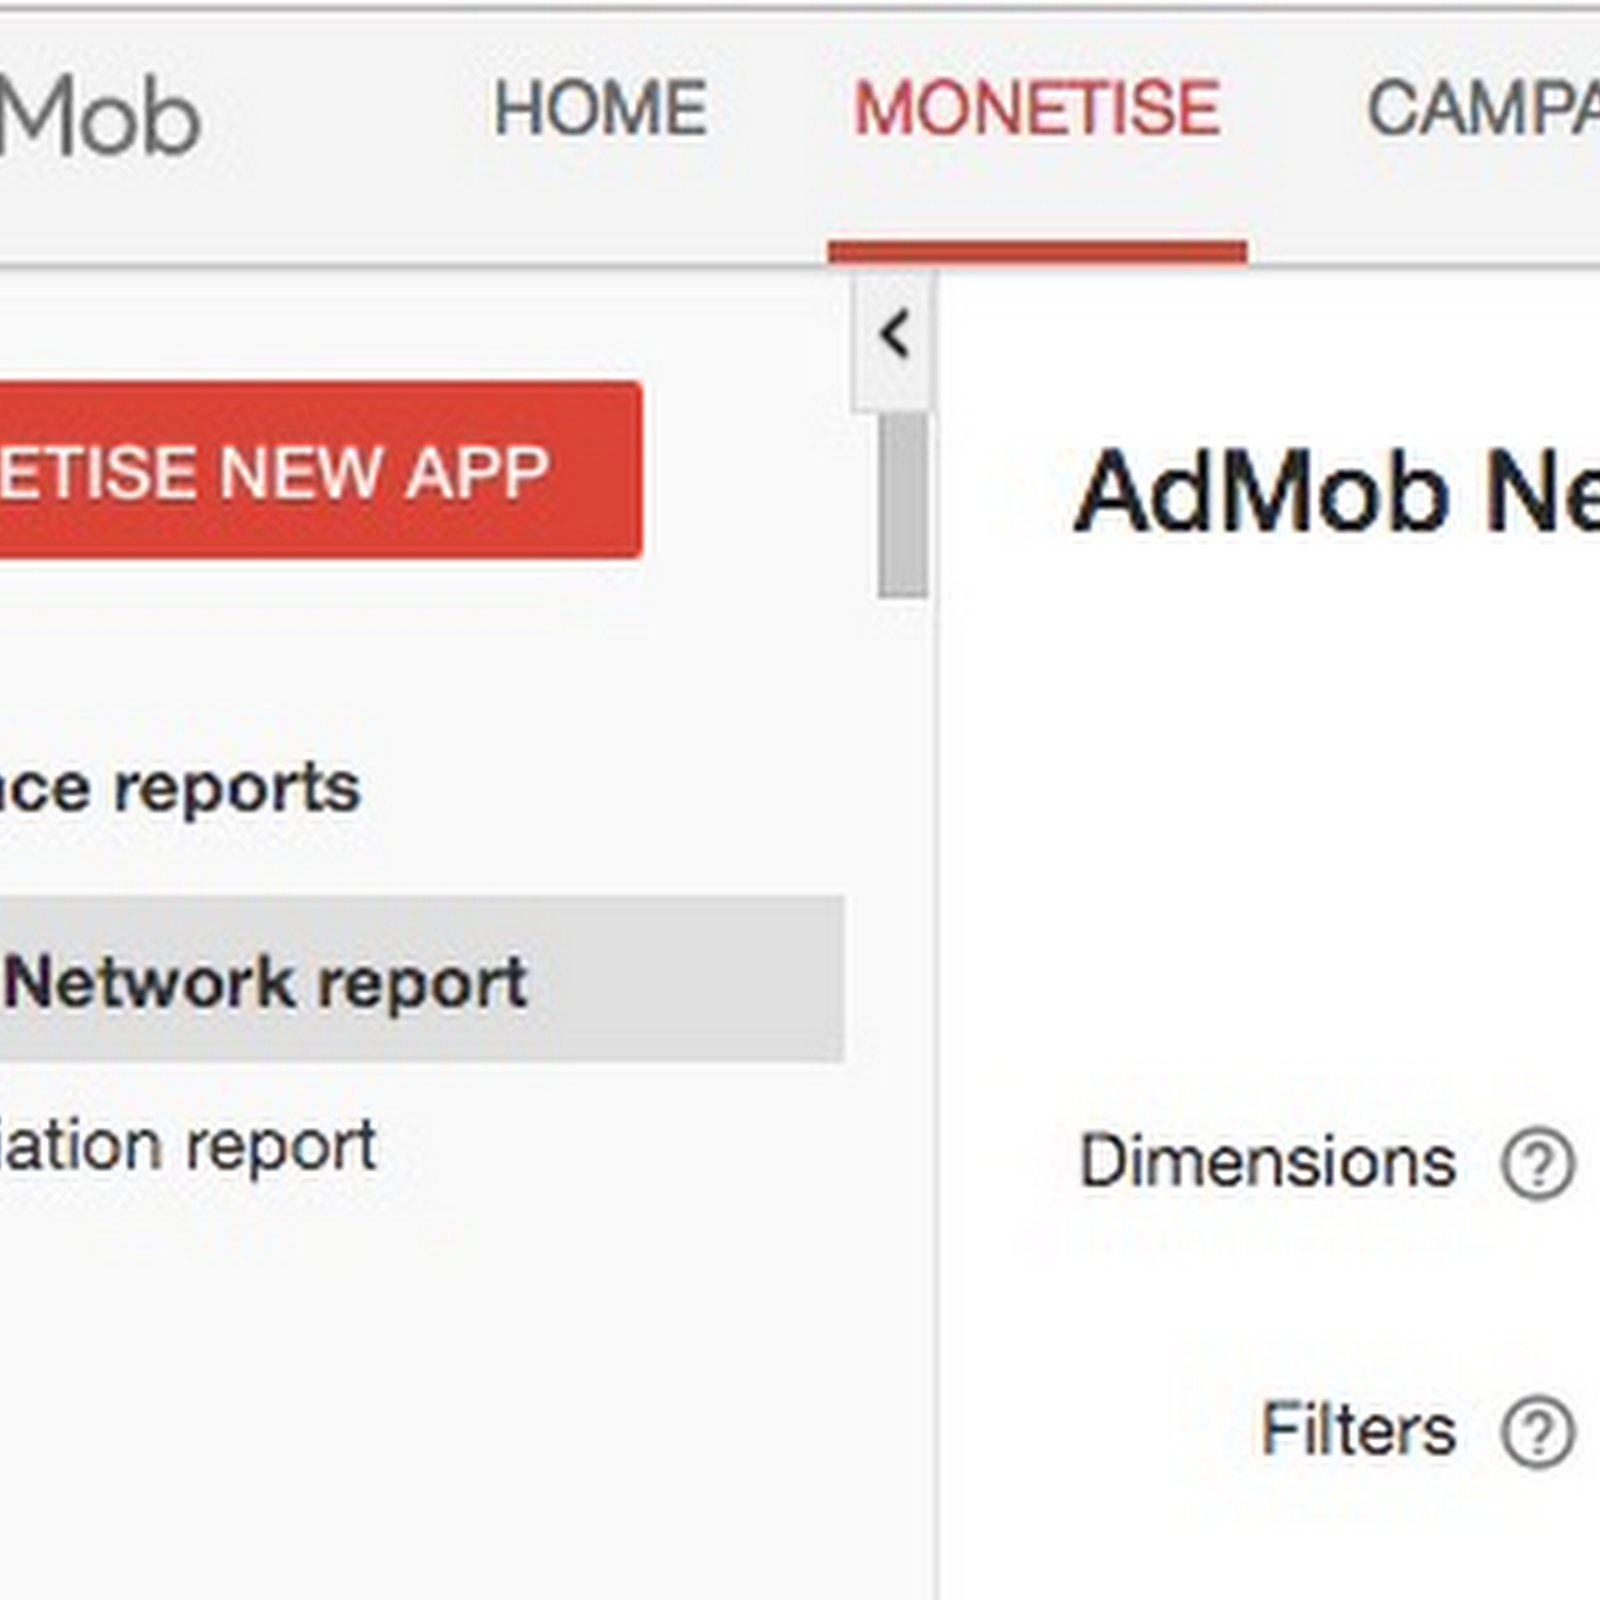 How to add Admob Firebase in Swift Xcode project